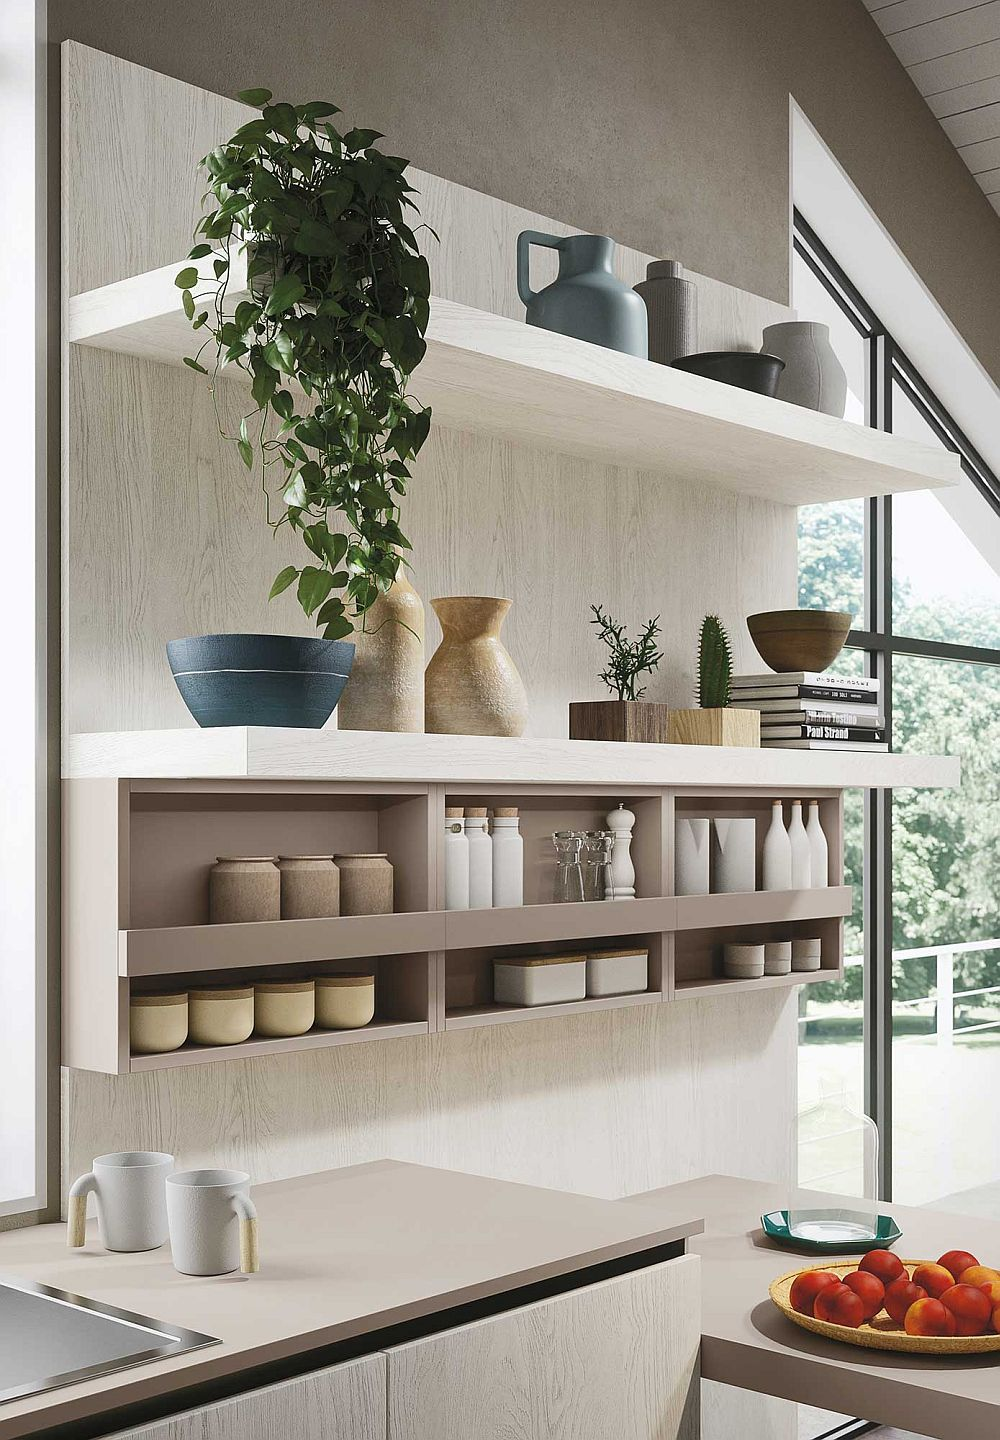 Fabulous open kitchen shelves for the minimal, contemporary kitchen